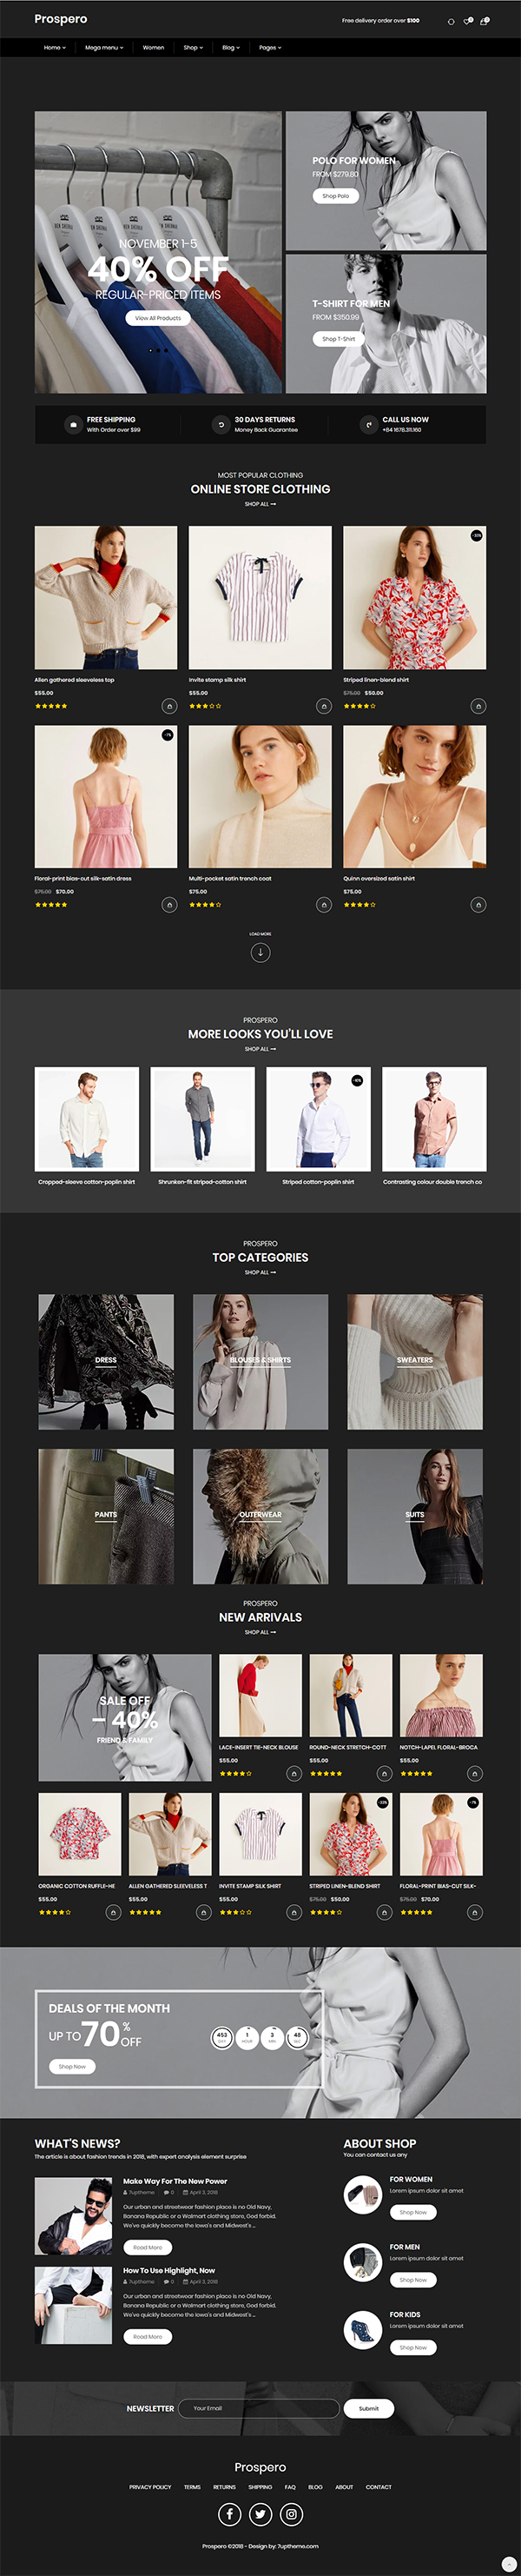 Prospero - Fashion Jewelry Watch and Glasses WooCommerce Theme